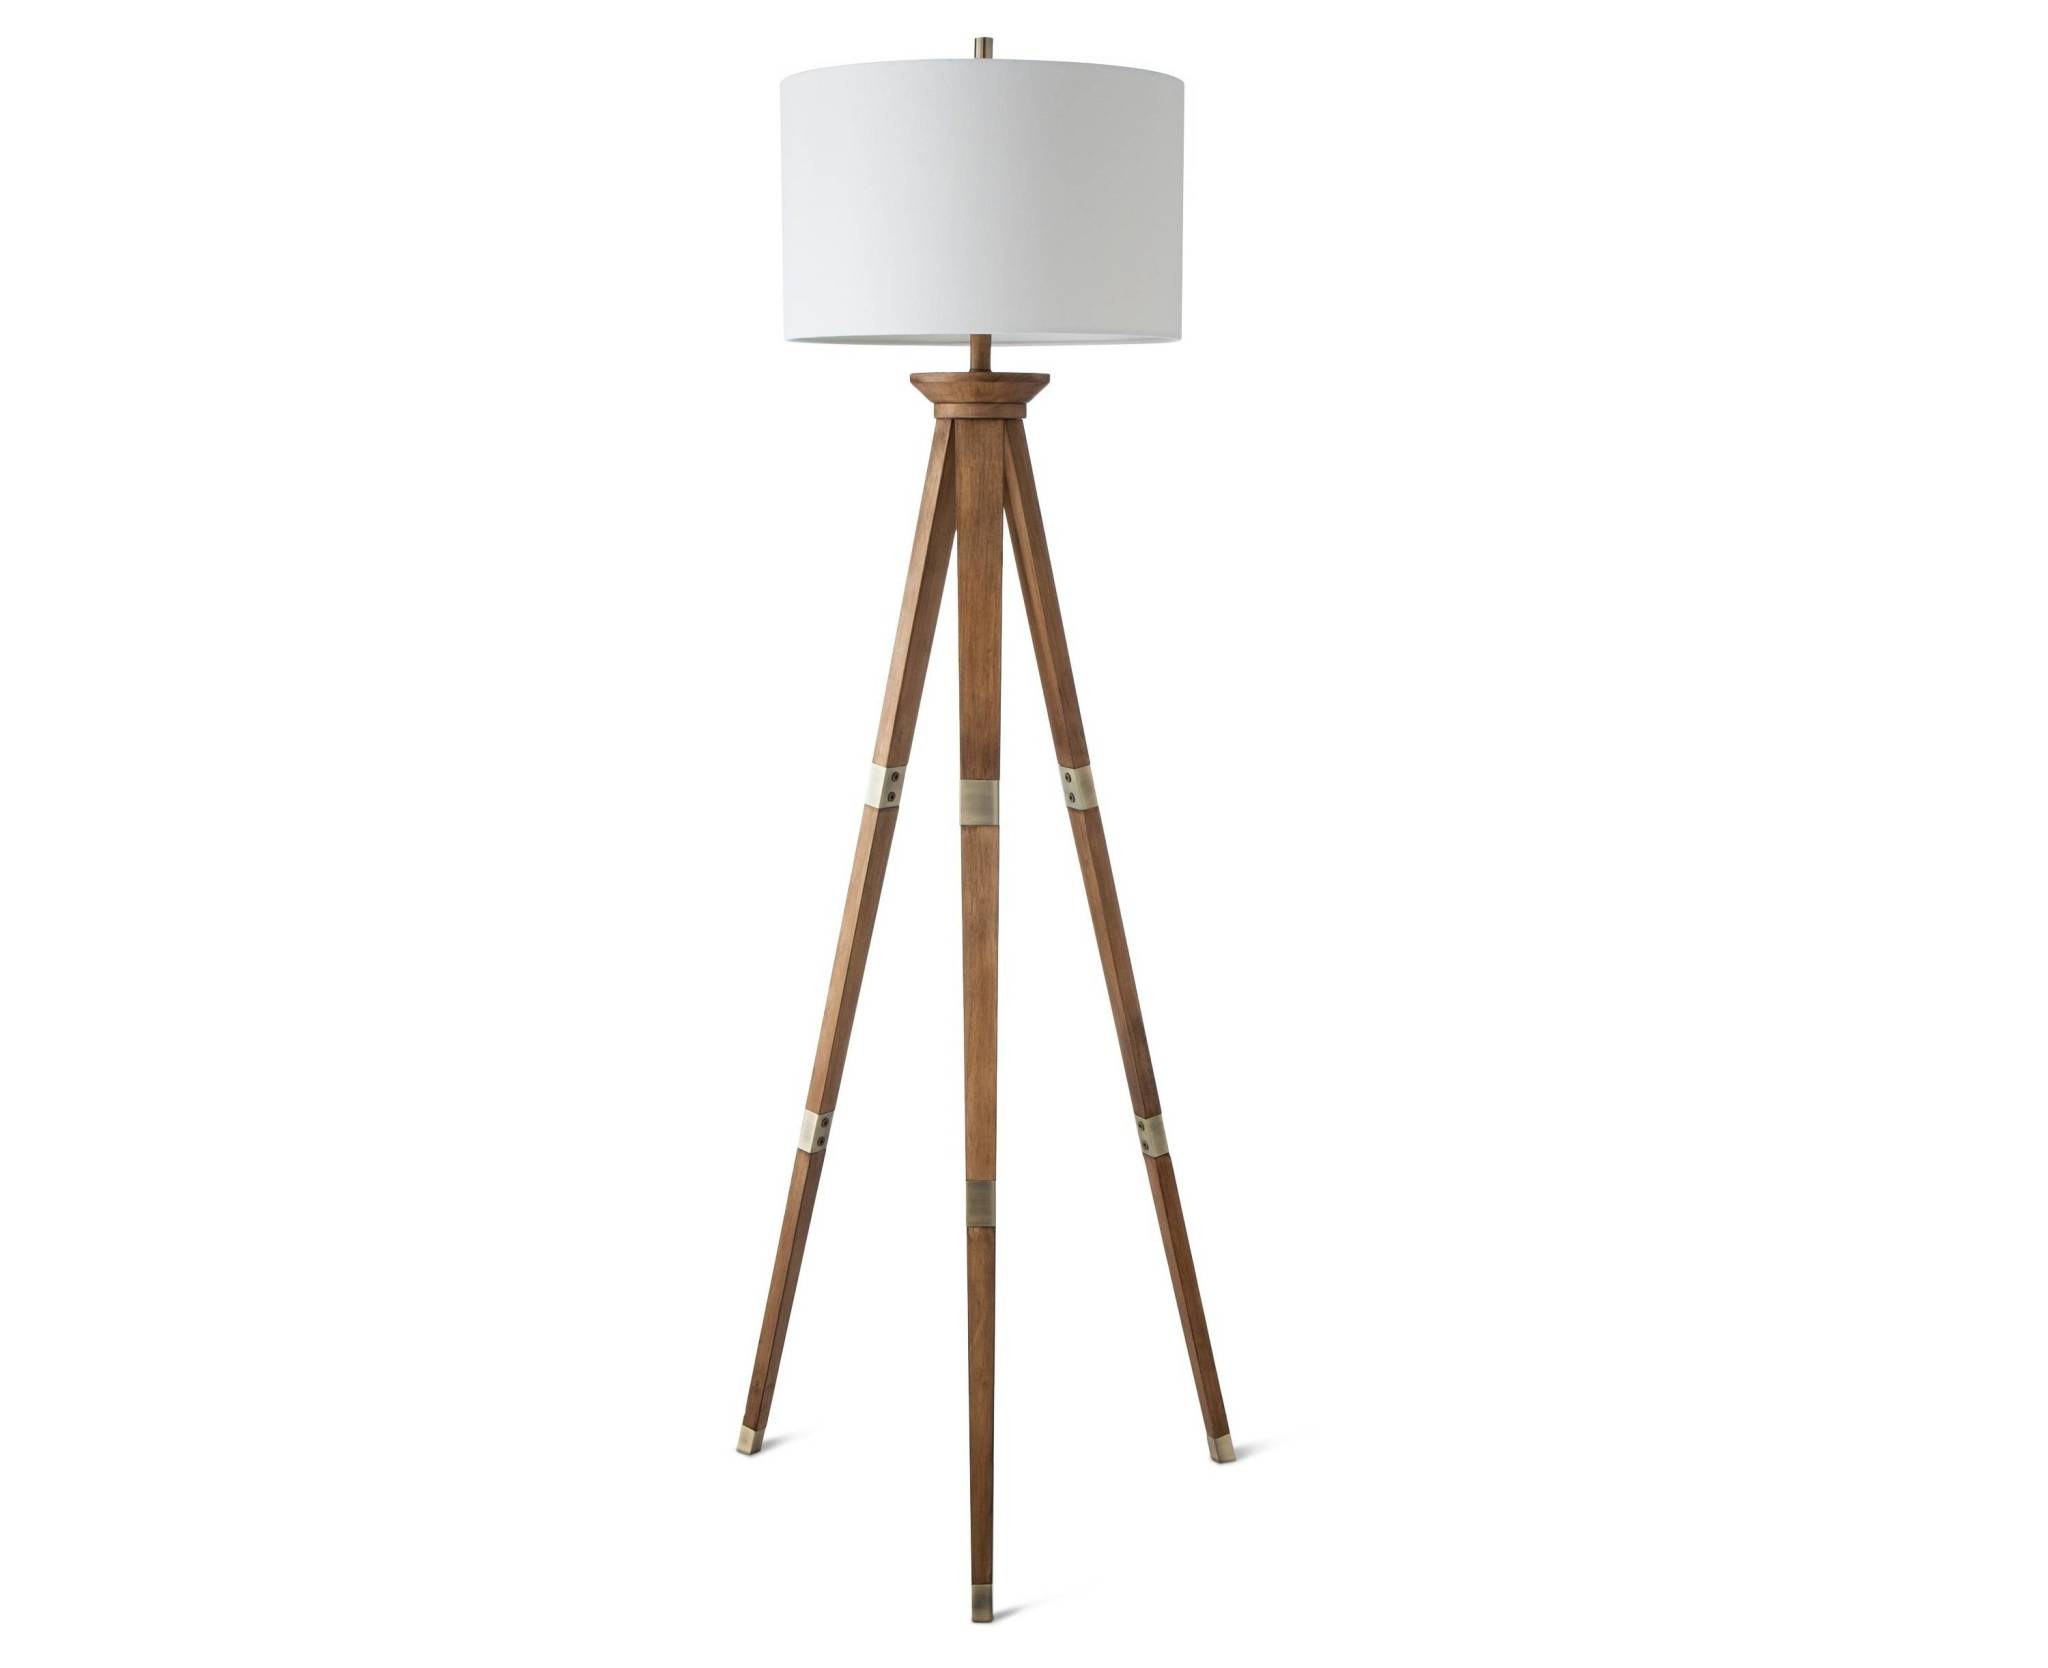 pieces you need from target big home nate berkus glass agate accent table best drum throne nic with cooler toulon unfinished legs pottery barn graphers floor lamp bistro set desk